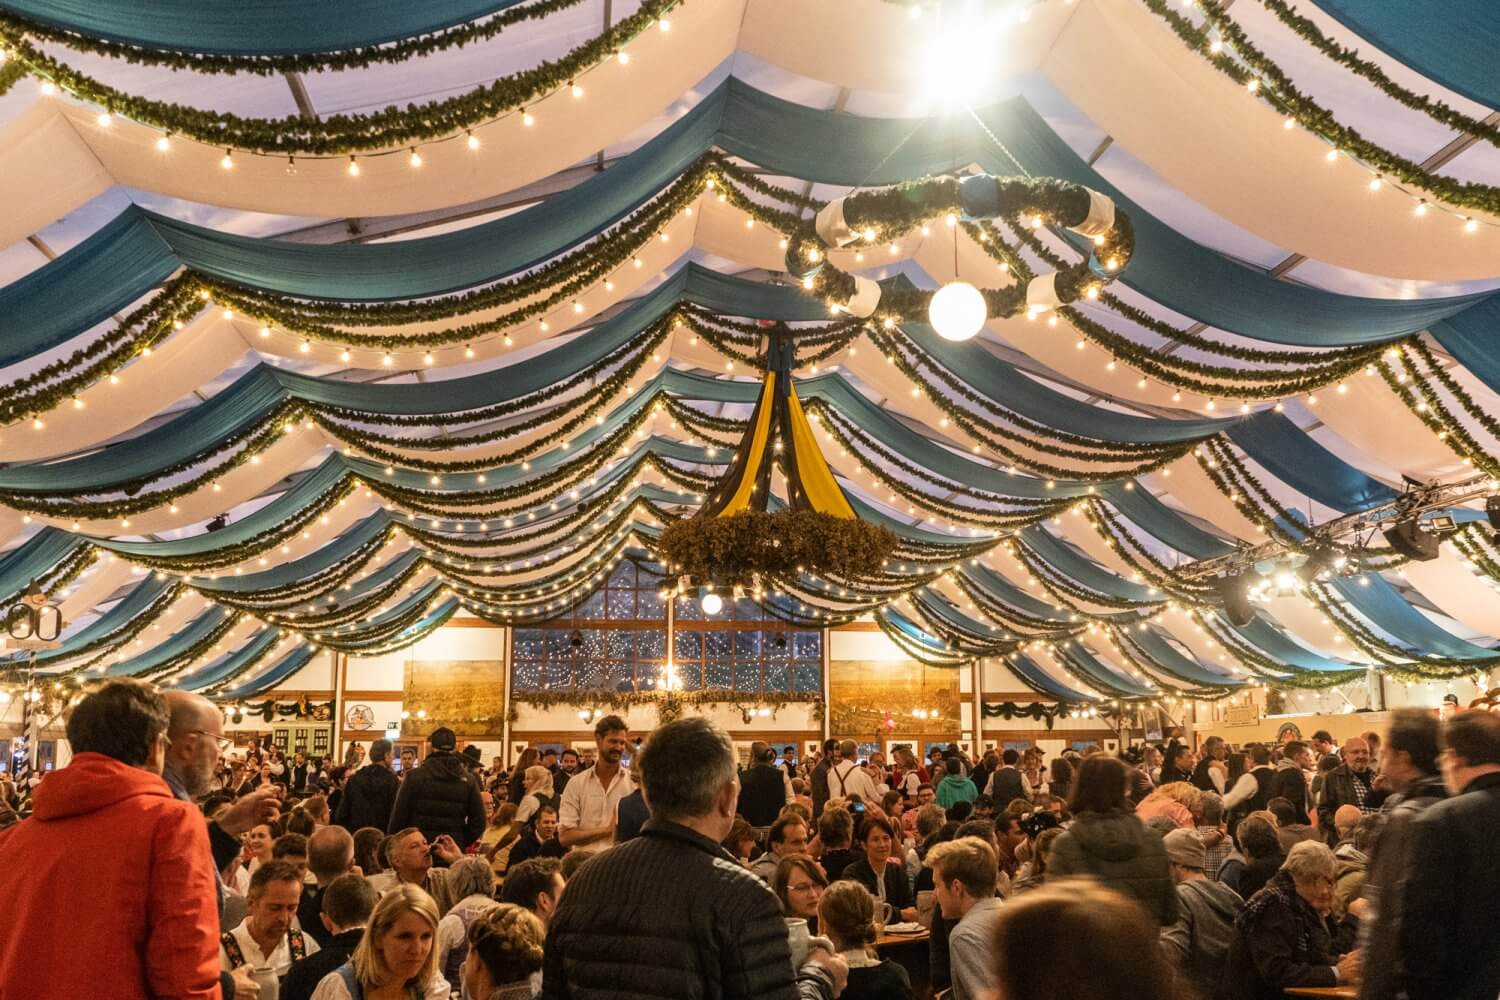 Herzkaspertzelt tent at Oktoberfest in Munich, Germany